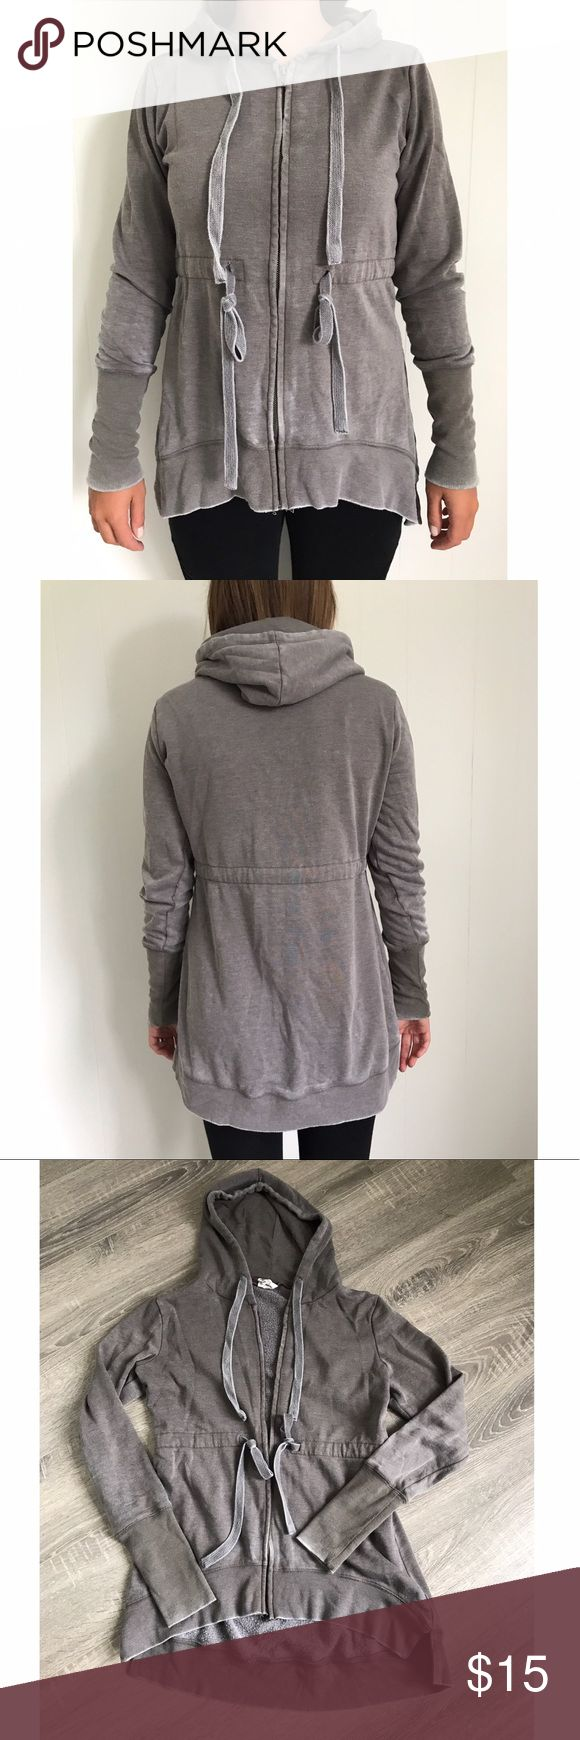 Grey zip up sweatshirt Grey Zip up sweatshirt. From tillys size M. Ties around hood and waist. Lower in the back and small slits at bottom on sides. Tops Sweatshirts & Hoodies